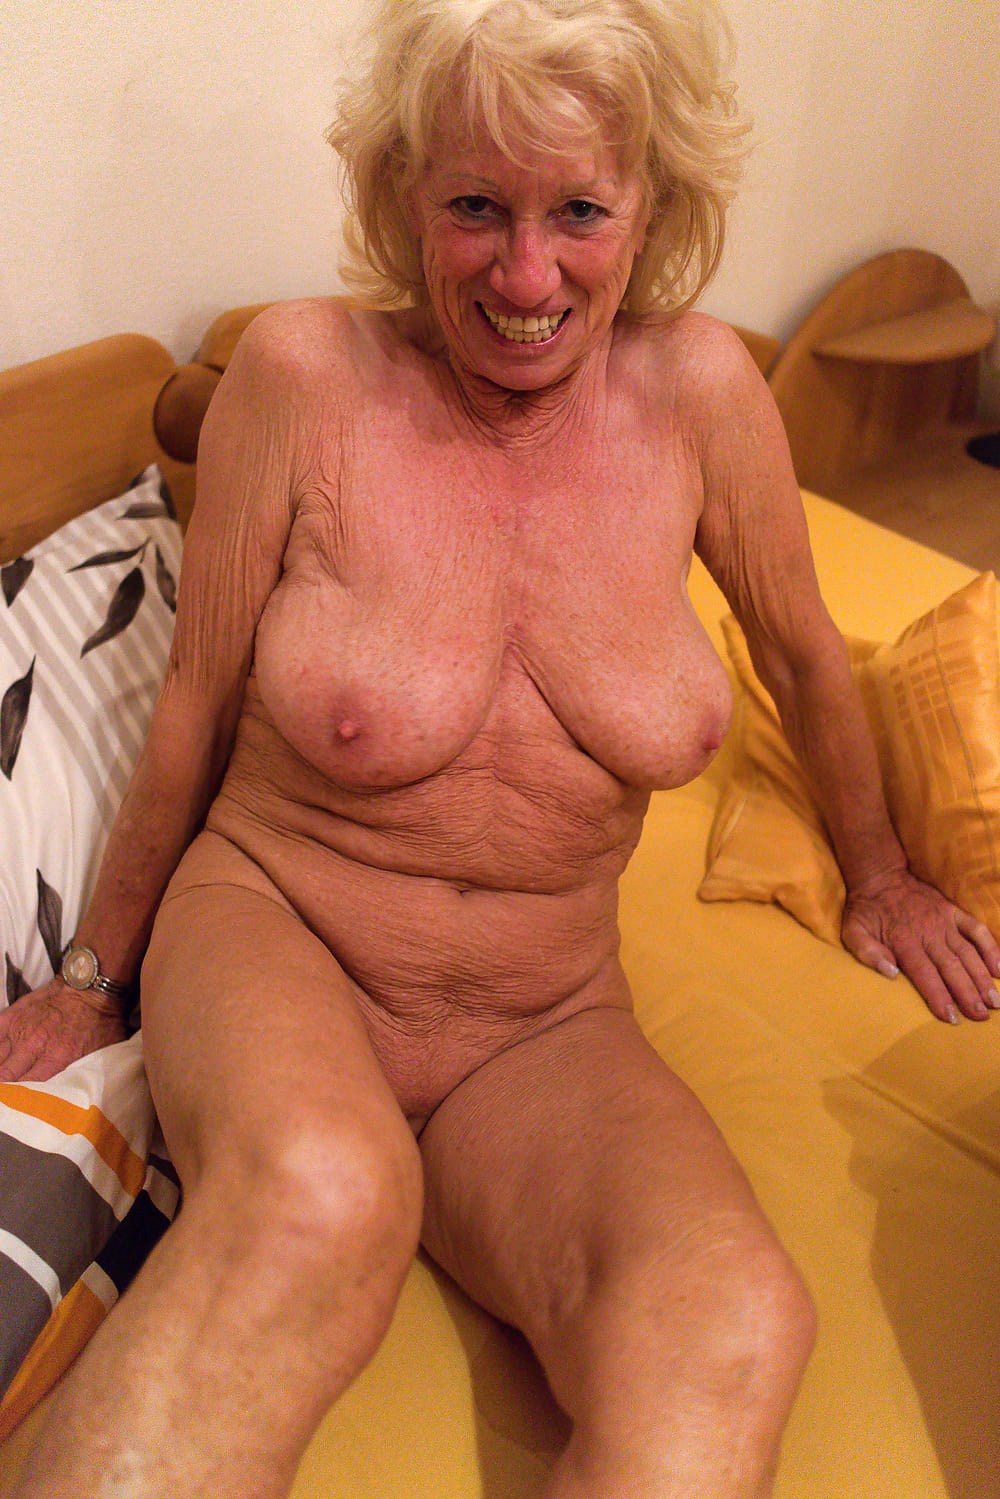 Big tits with tight virgin pussy pictures